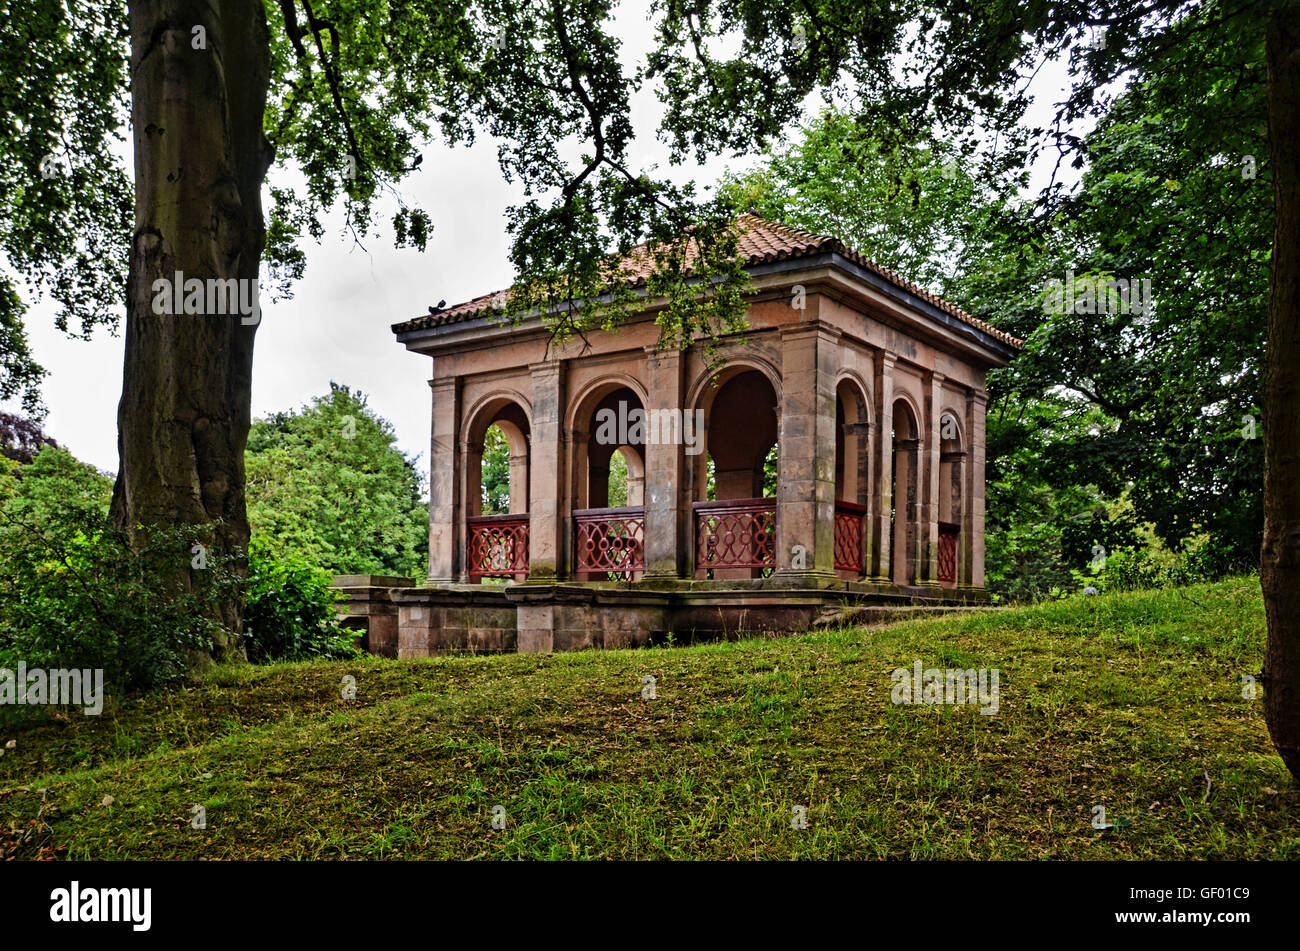 Birkenhead Park's iconic BoatHouse shown from opposite the lake, rather than from the lake. - Stock Image